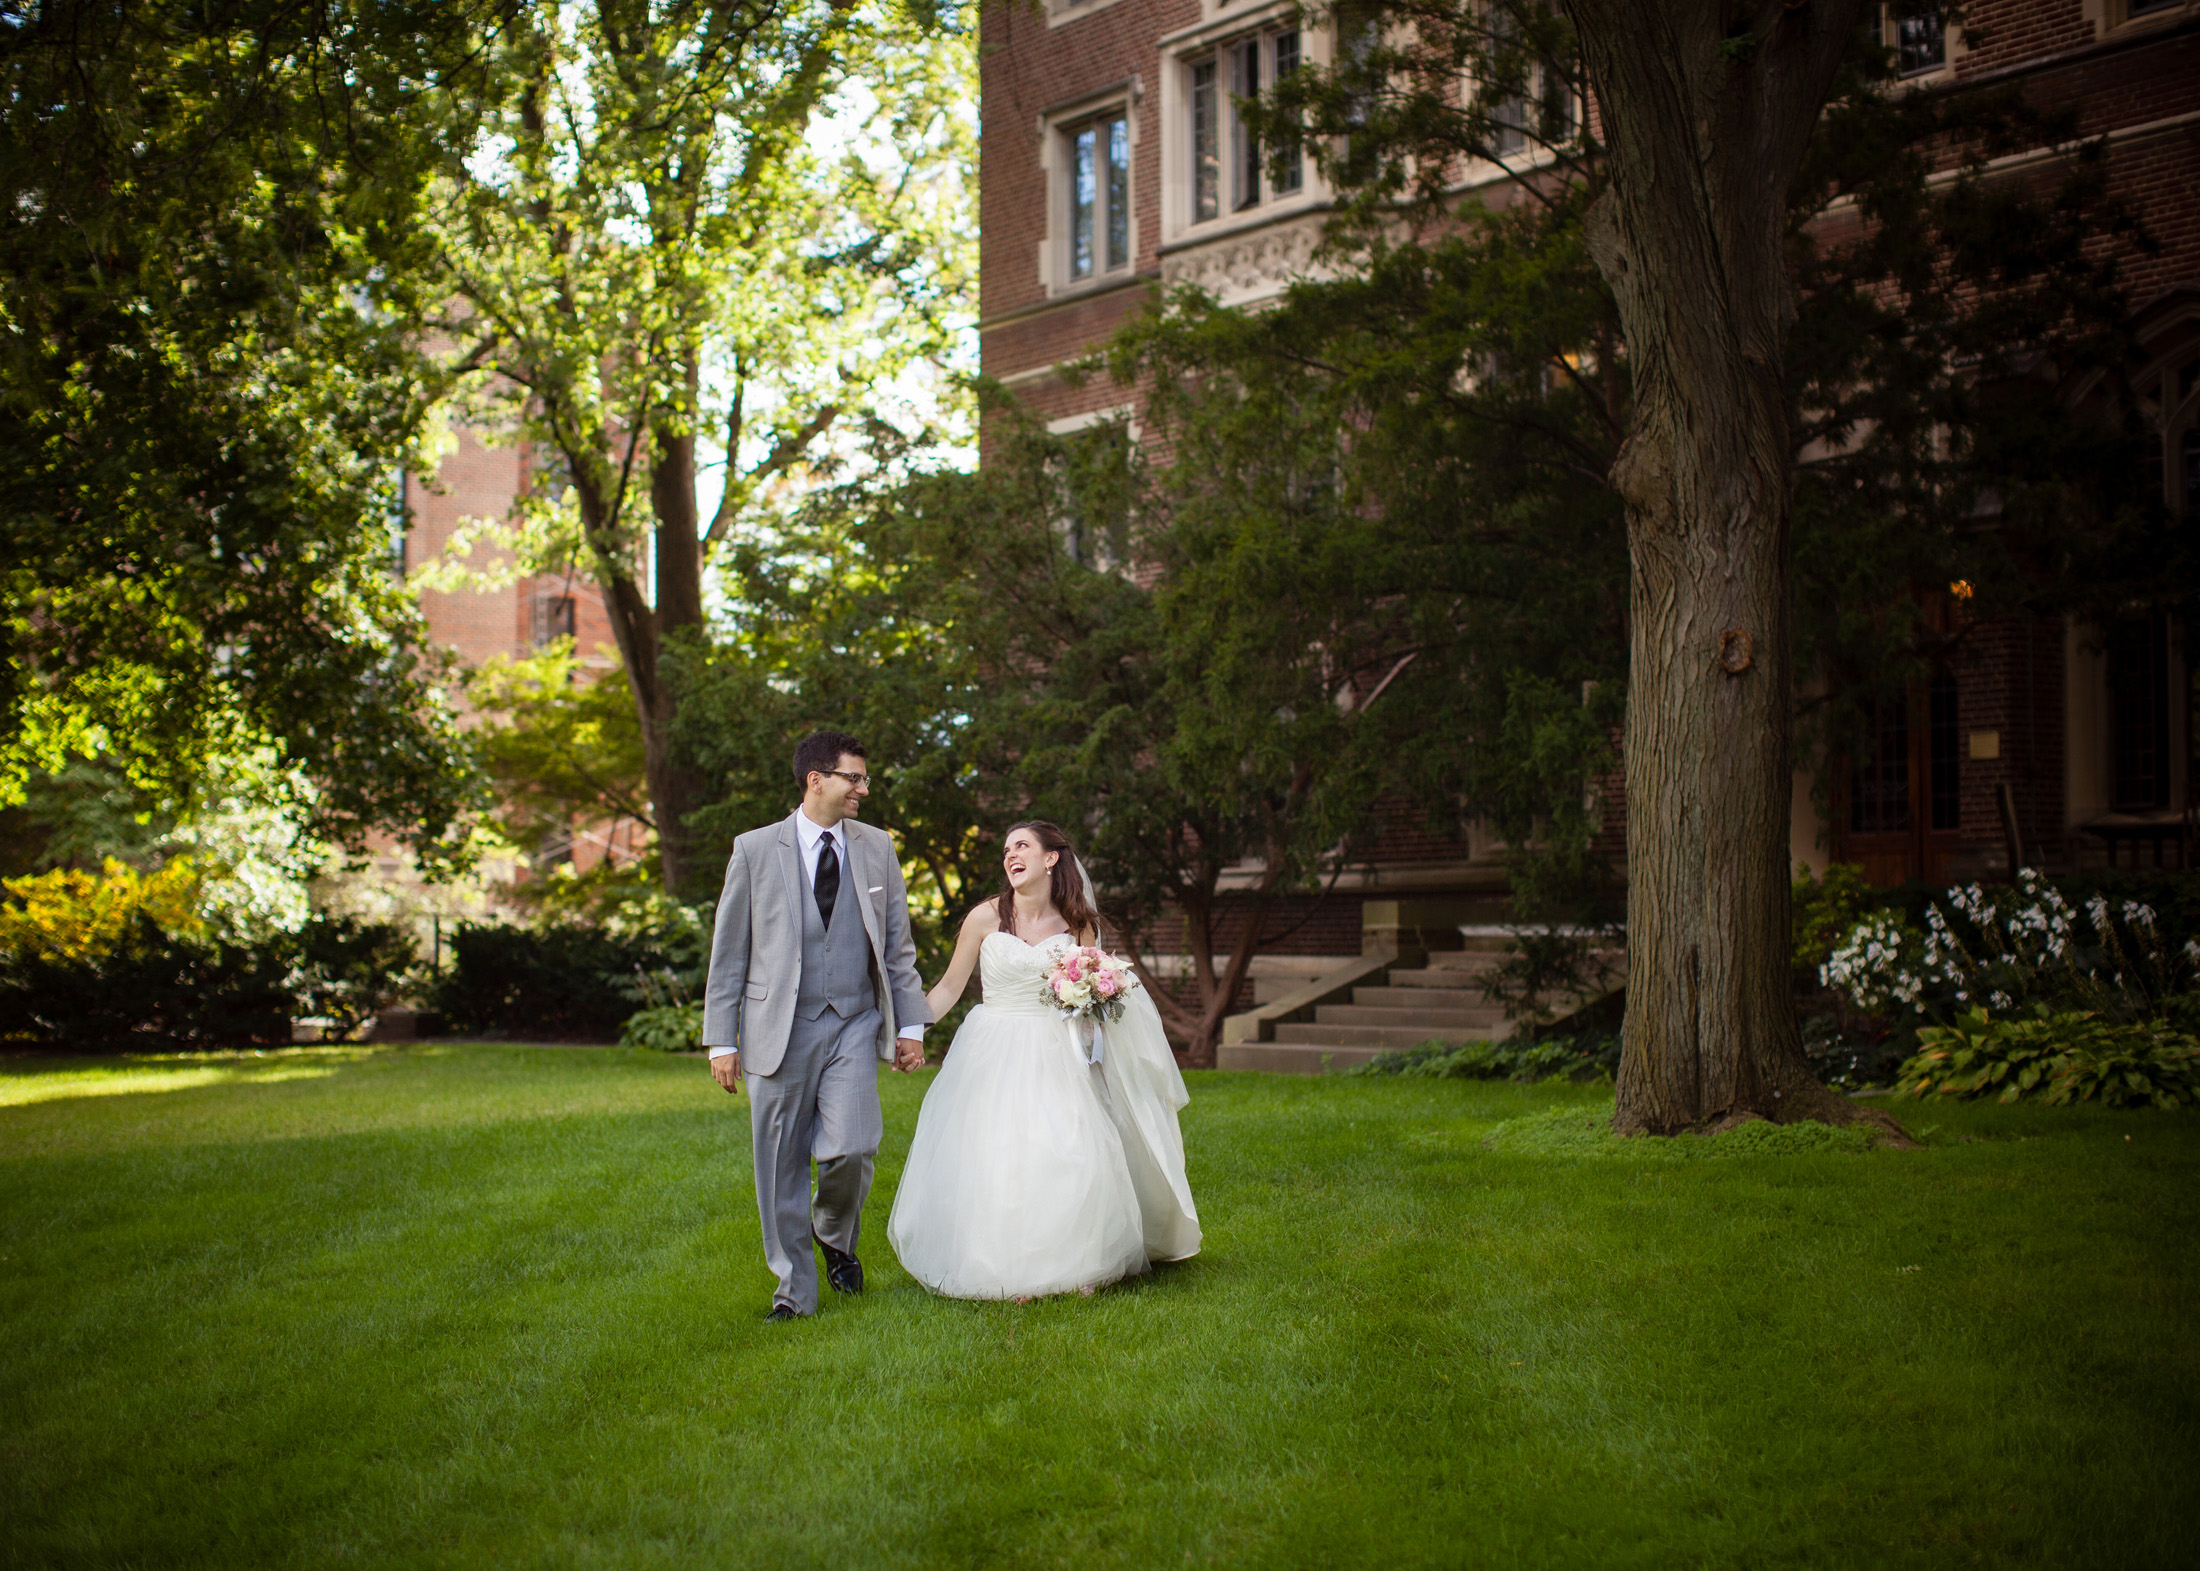 UofM_weddings_hull_melanie_reyes_058